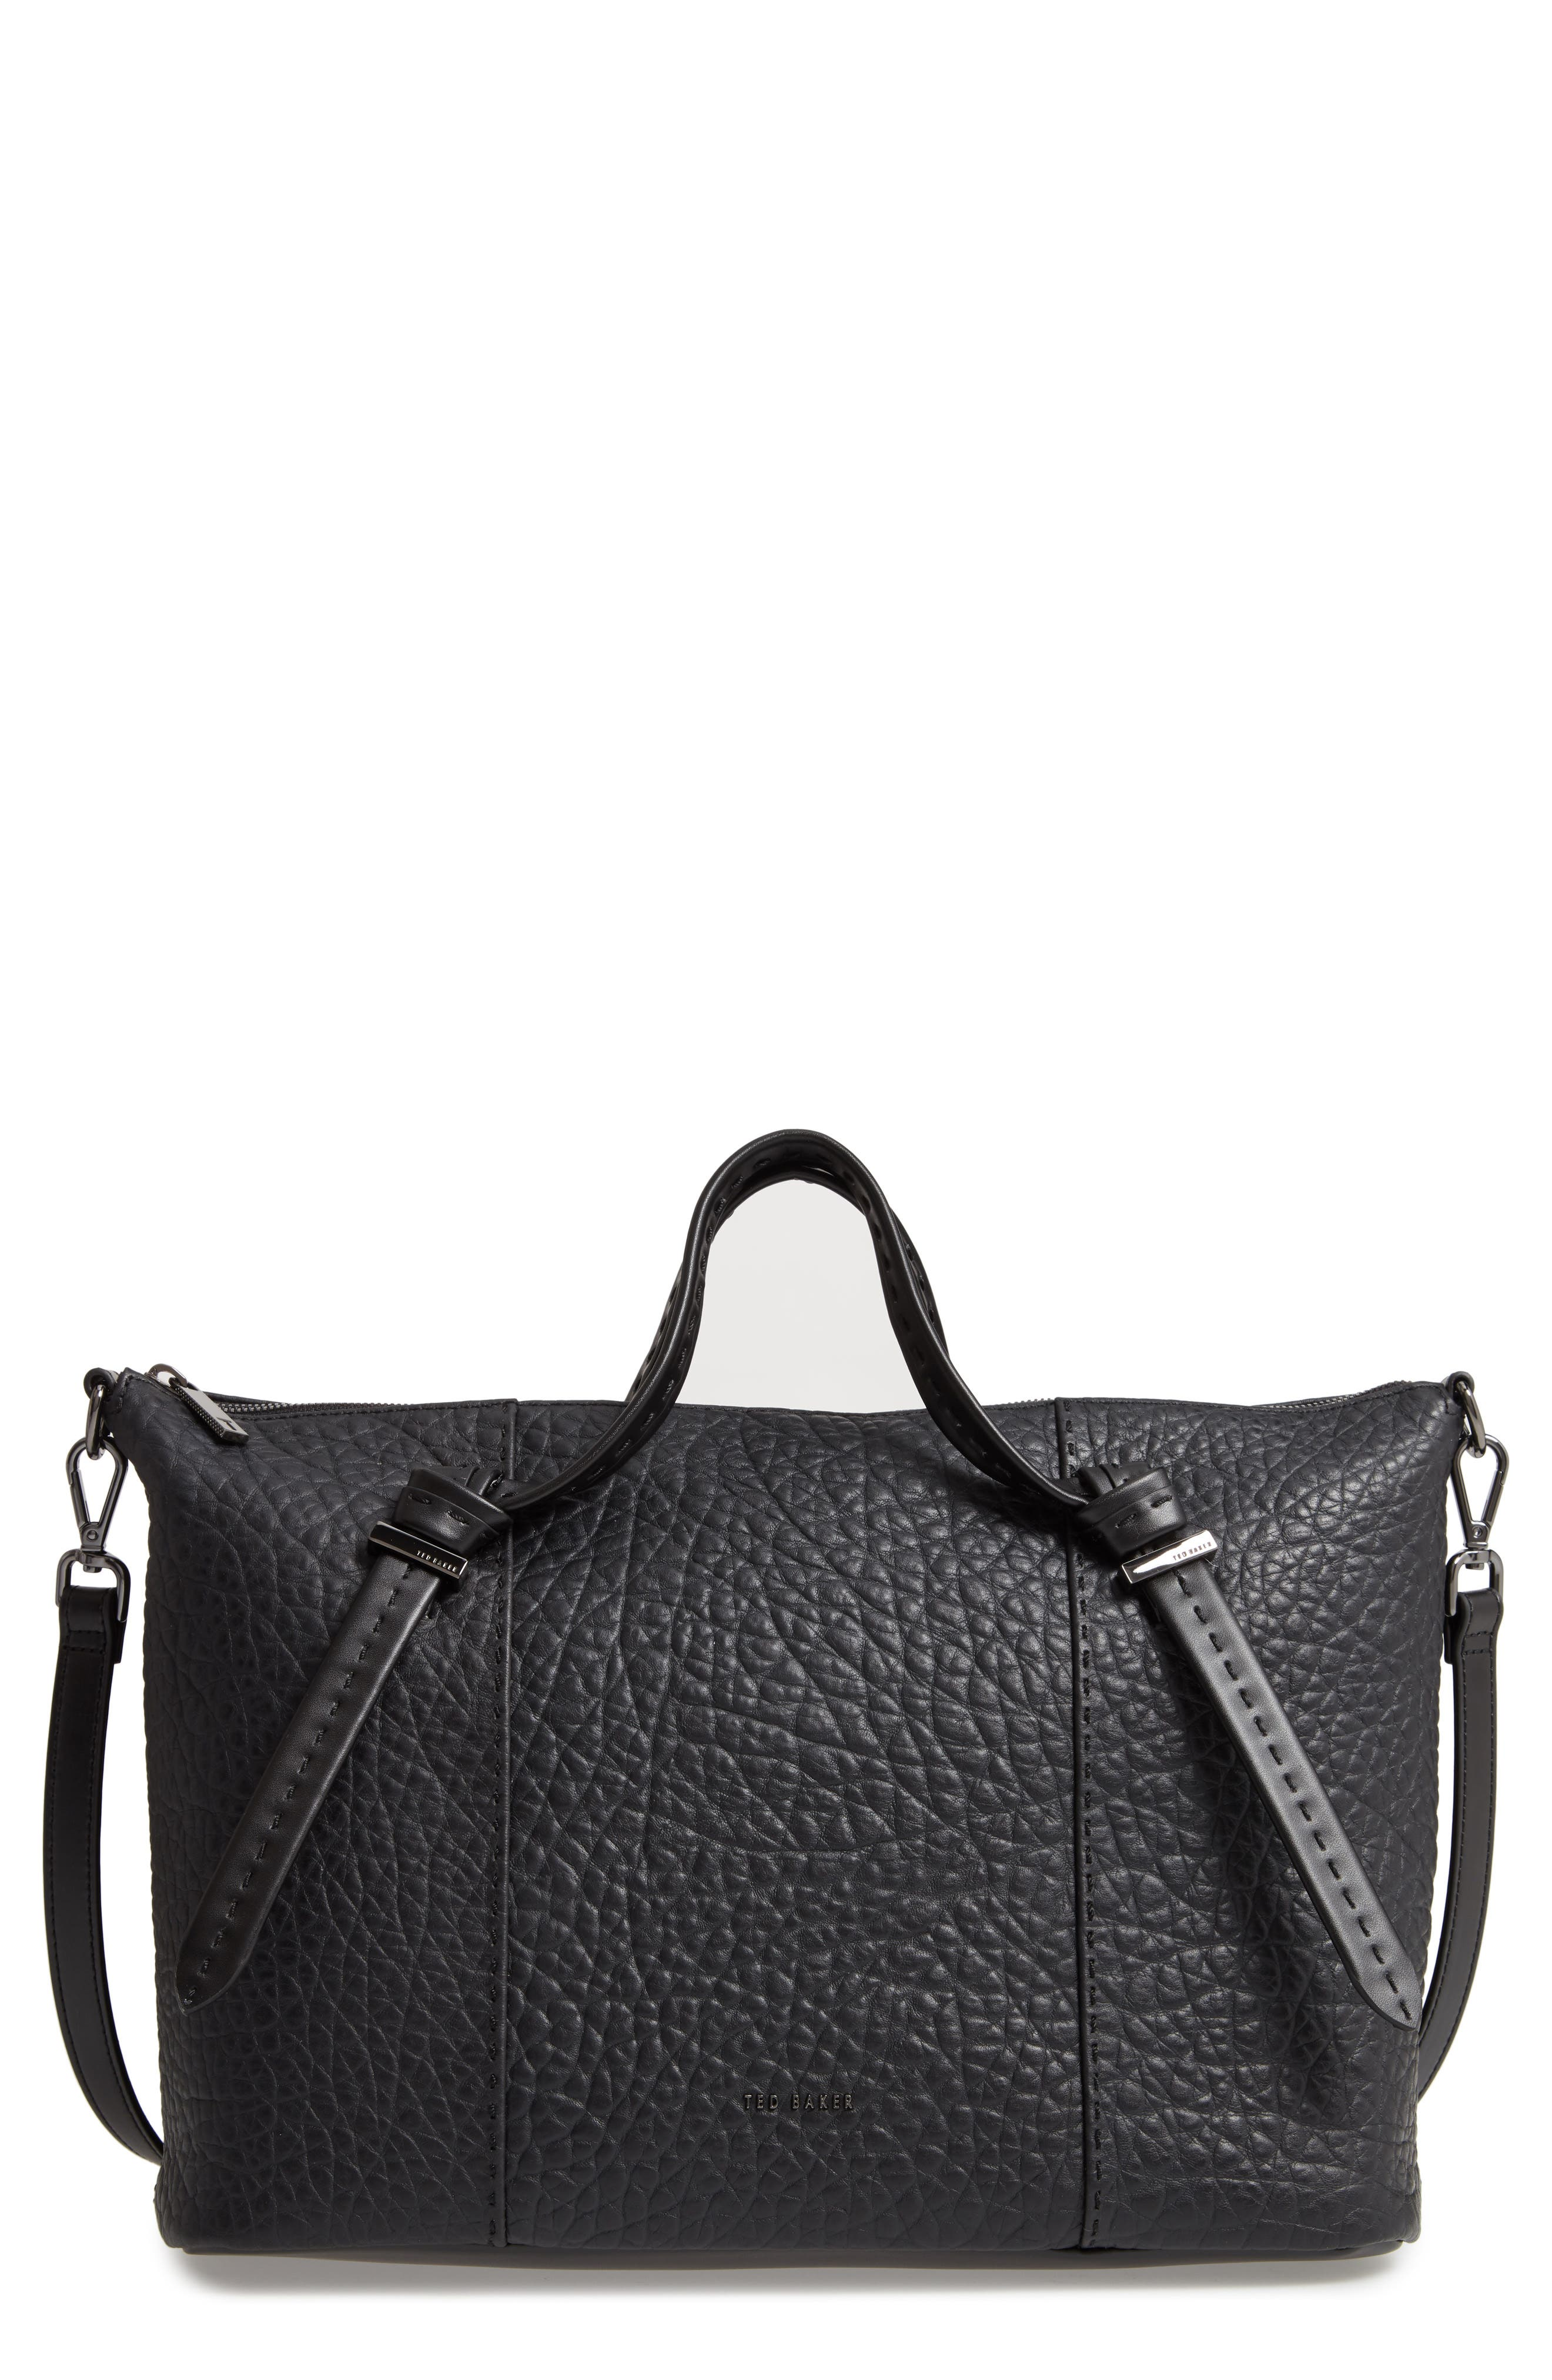 Oellie Large Leather Tote, Main, color, JET BLACK